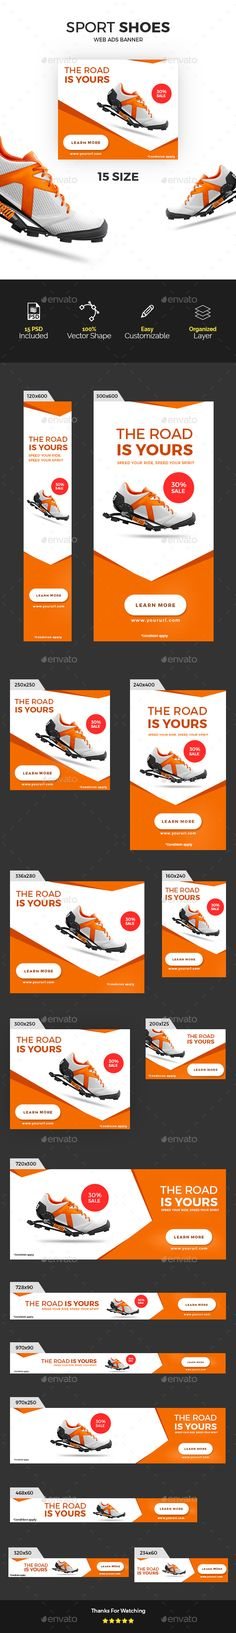 Sports Ads Banners — Photoshop PSD #ads #shoes • Available here → https://graphicriver.net/item/sports-ads-banners/15963053?ref=pxcr